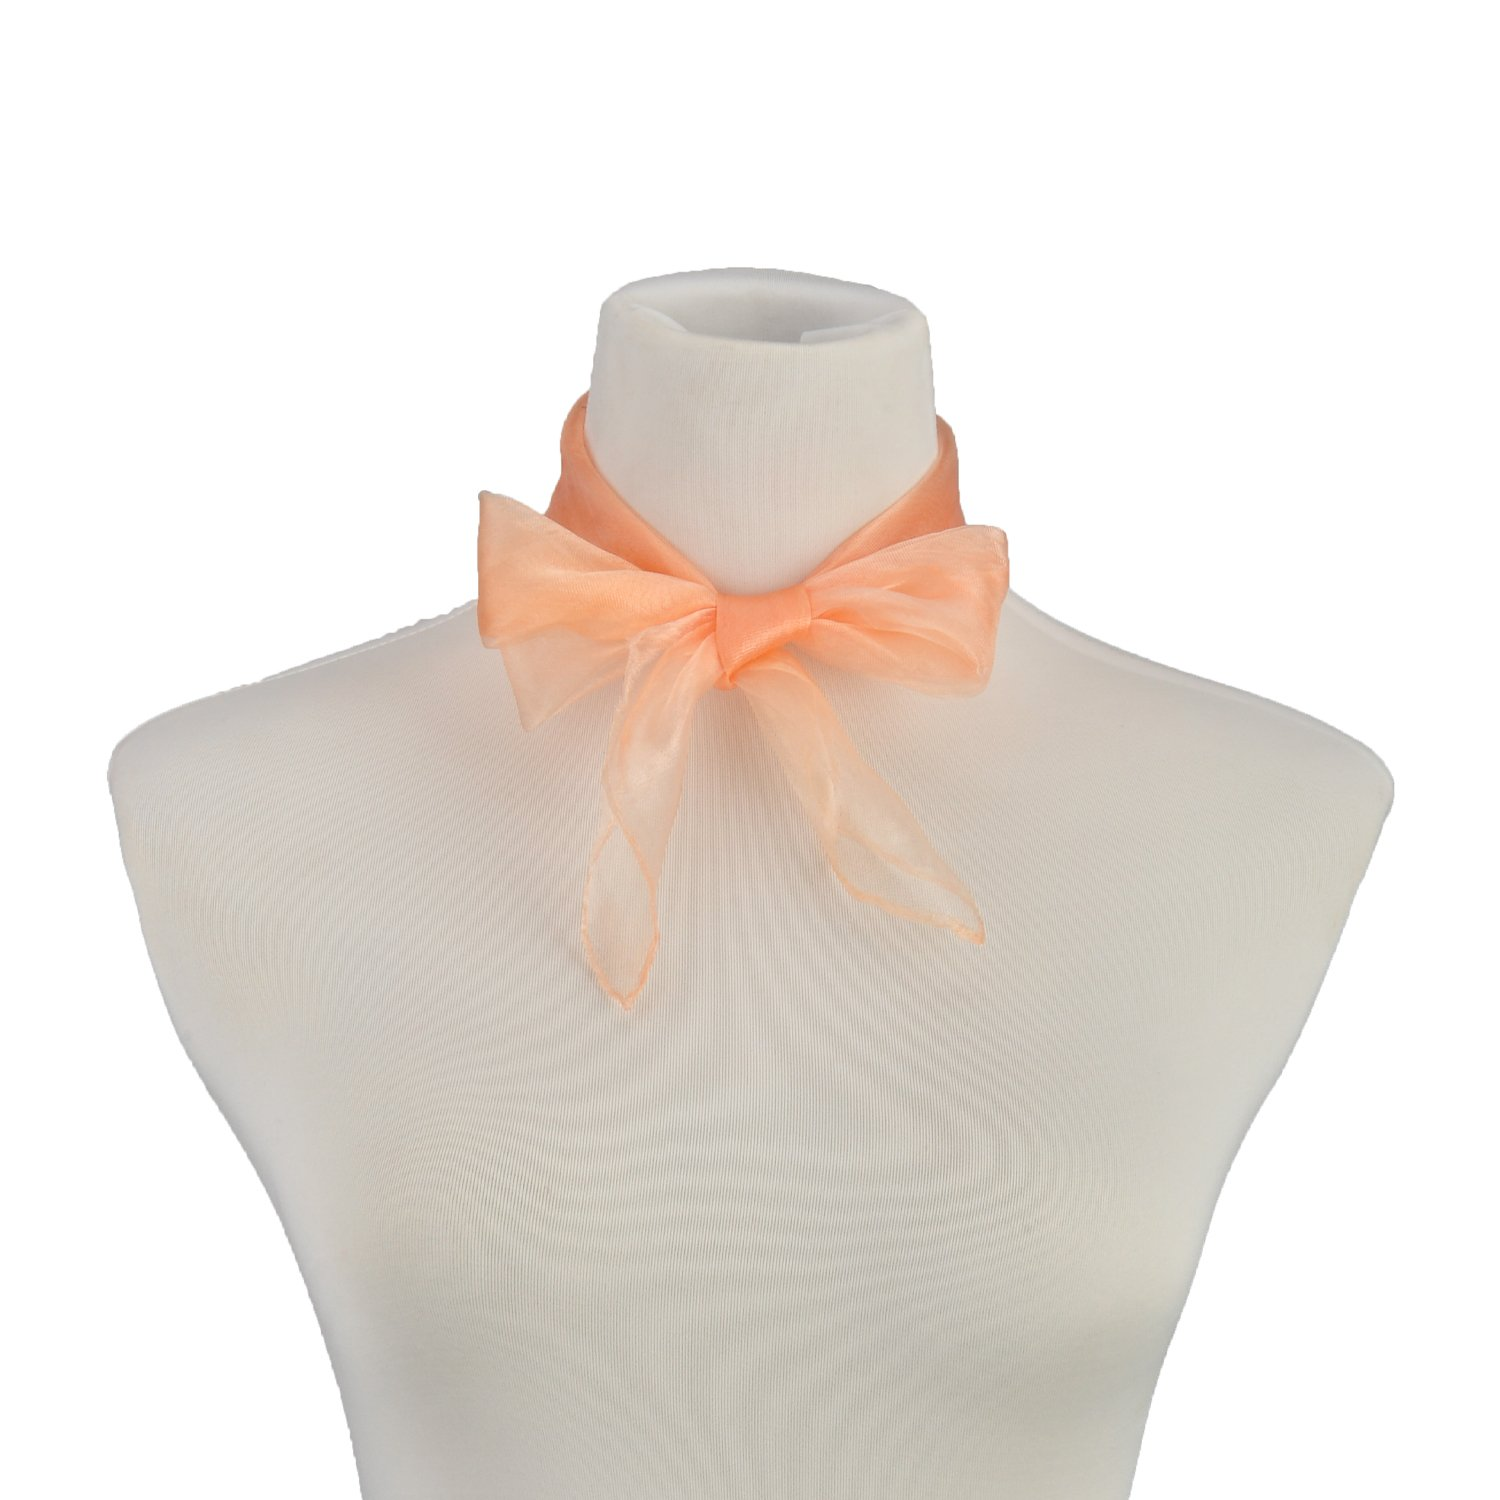 Fashion Extremely Light Square Scarf Music Rhythm Fun Magic Show Scarves Champagne by HERRICO (Image #5)